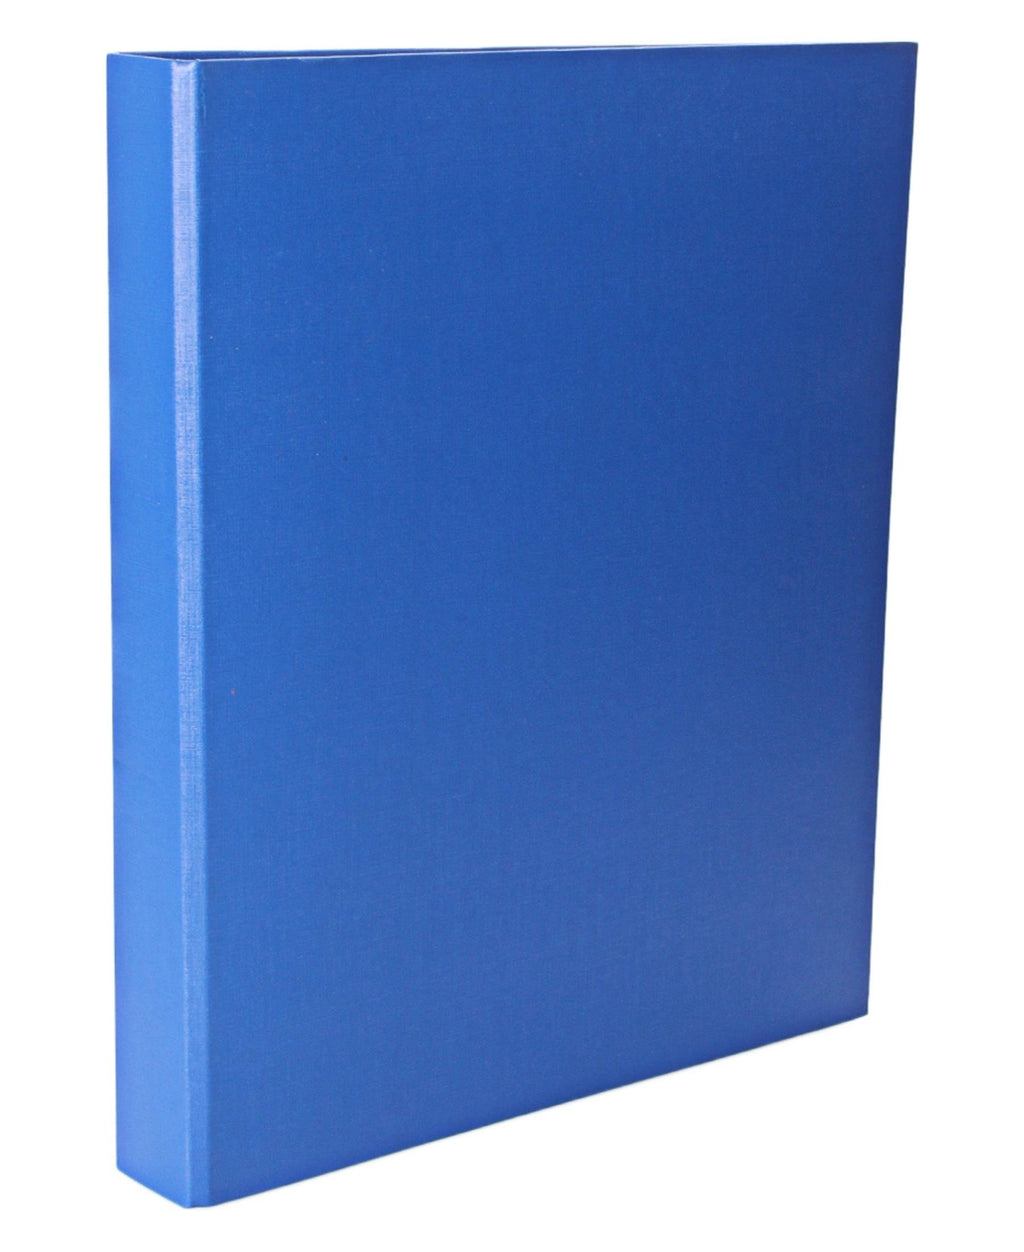 Marlin PVC Ring Binder File  - Blue